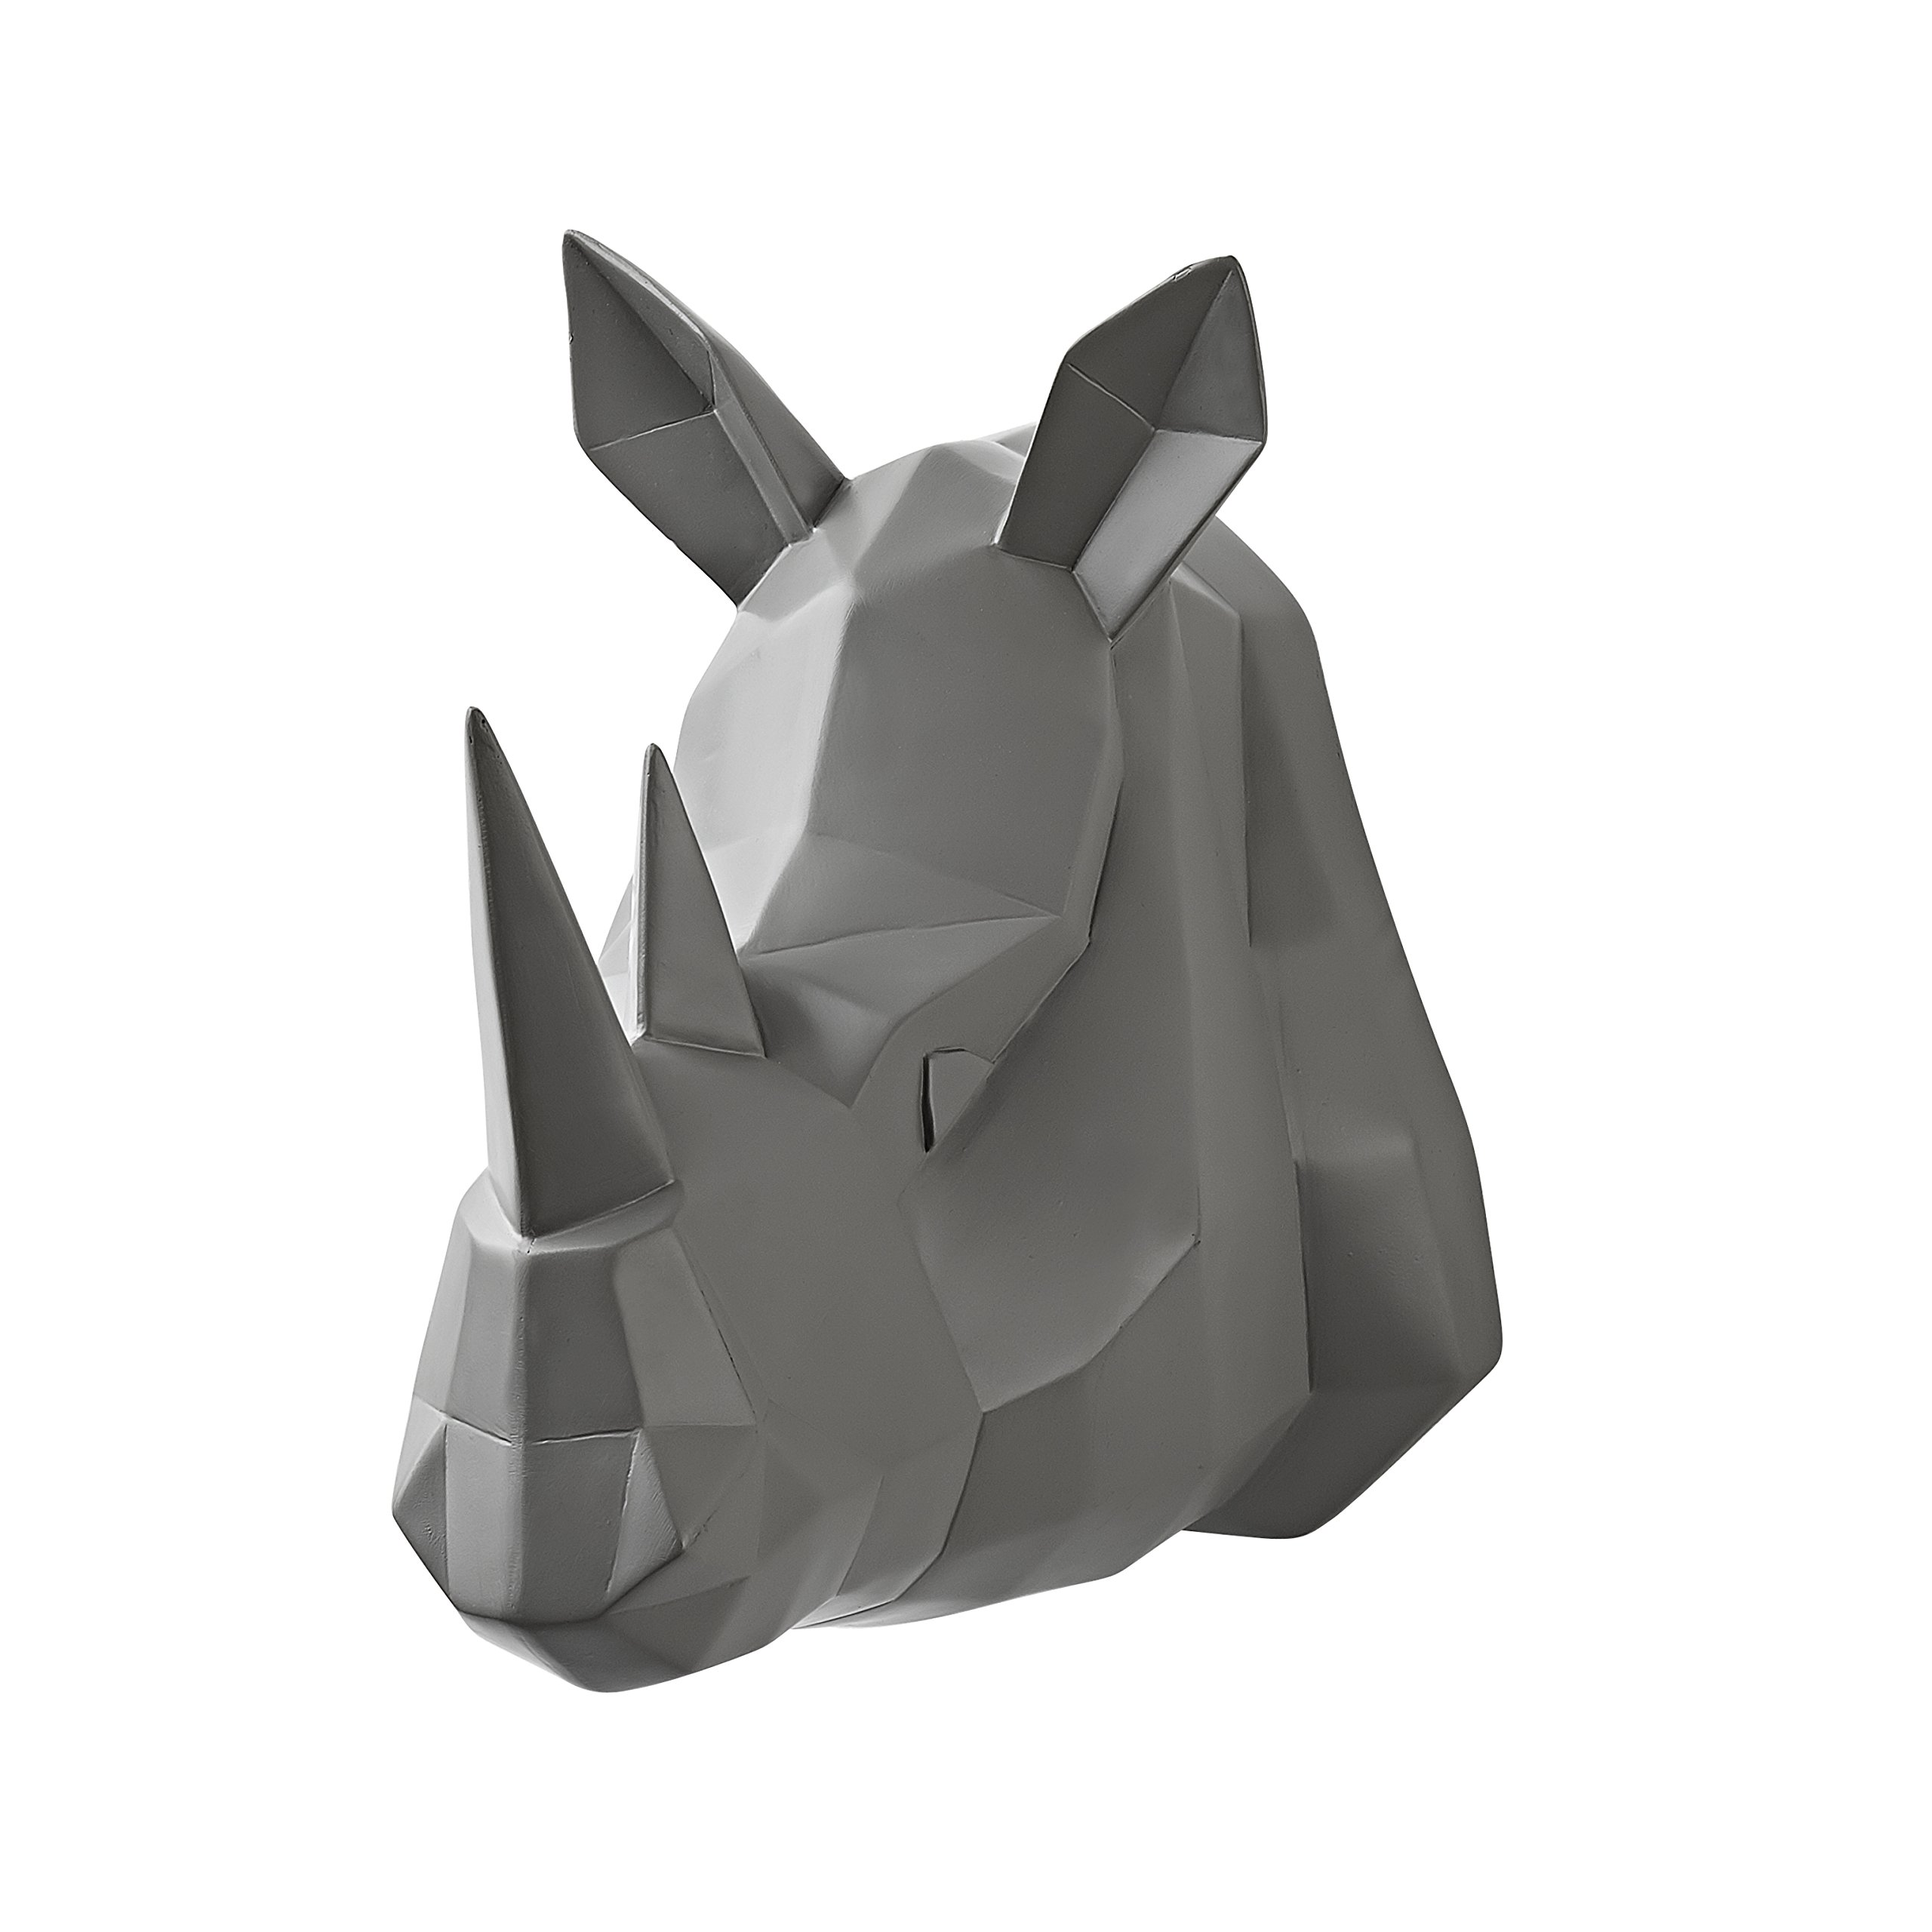 Vistella 3D Rhino Head Wall Art Decor - Modern Origami Wall Mountable Resin Animal Head - Multi Tone Digital Pixel Design - Home Indoor Abstract Decorative Sculpture